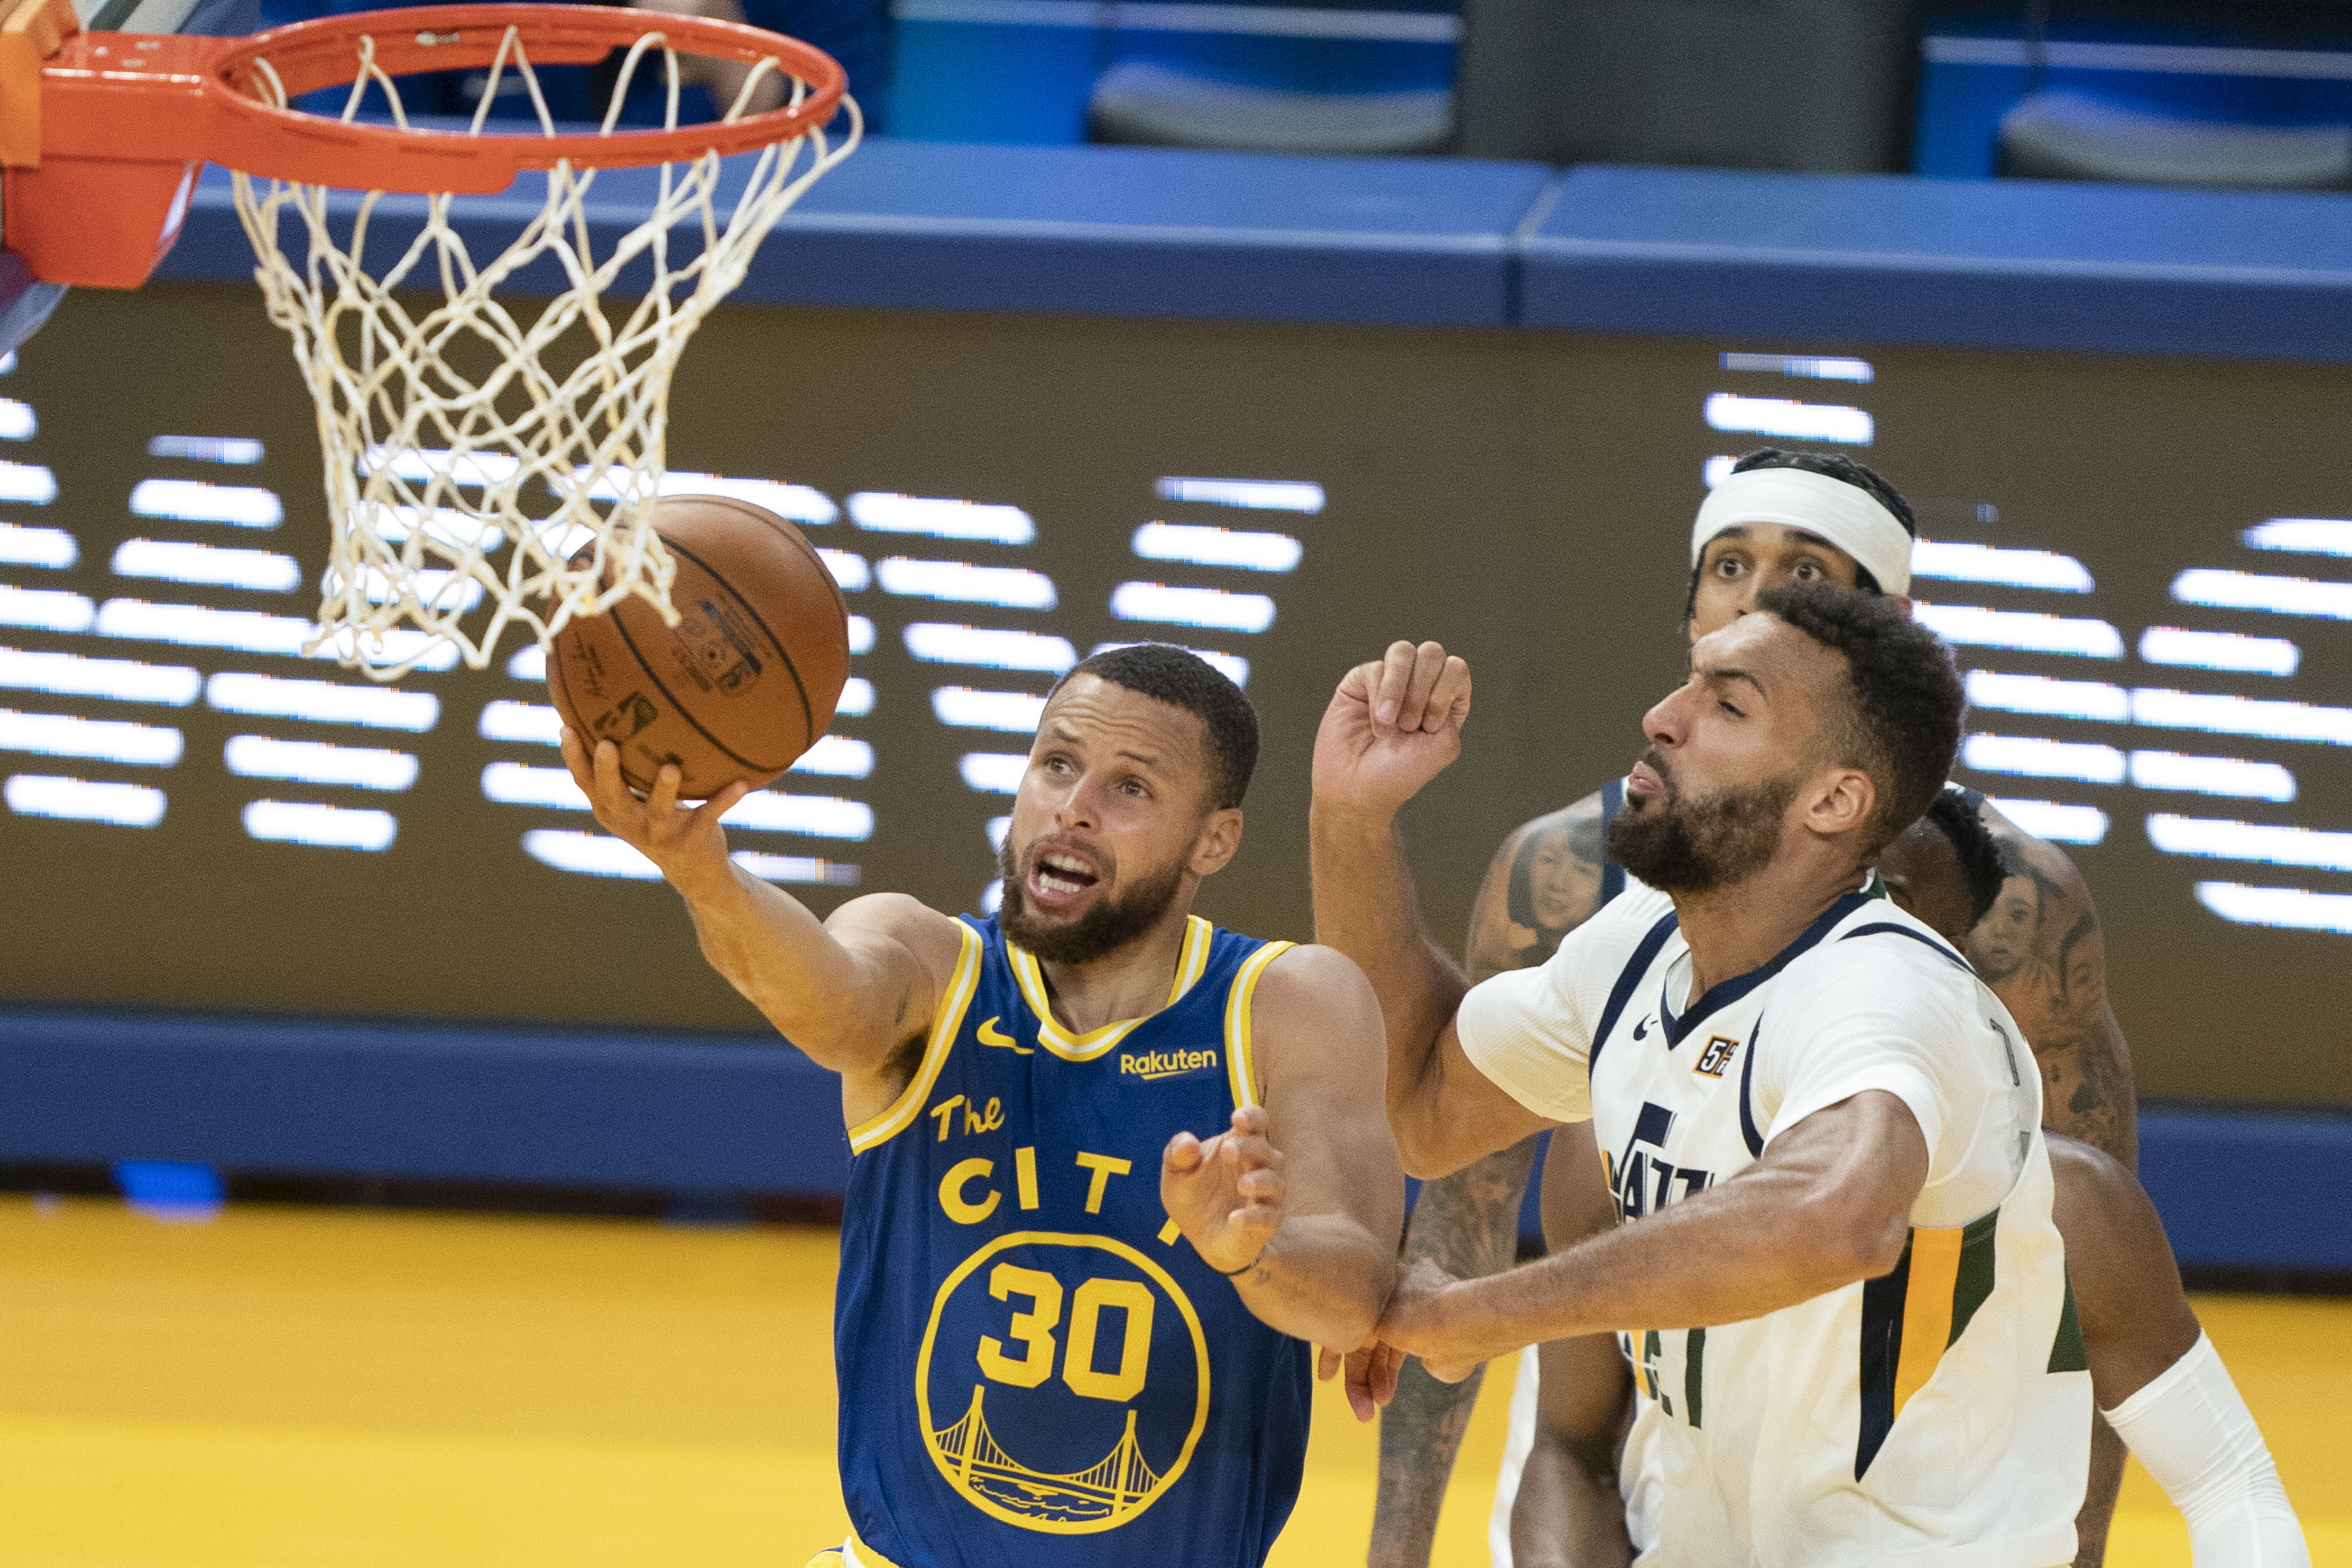 May 10, 2021; San Francisco, California, USA; Golden State Warriors guard Stephen Curry (30) shoots the basketball against Utah Jazz center Rudy Gobert (27) during the third quarter at Chase Center. Mandatory Credit: Kyle Terada-USA TODAY Sports